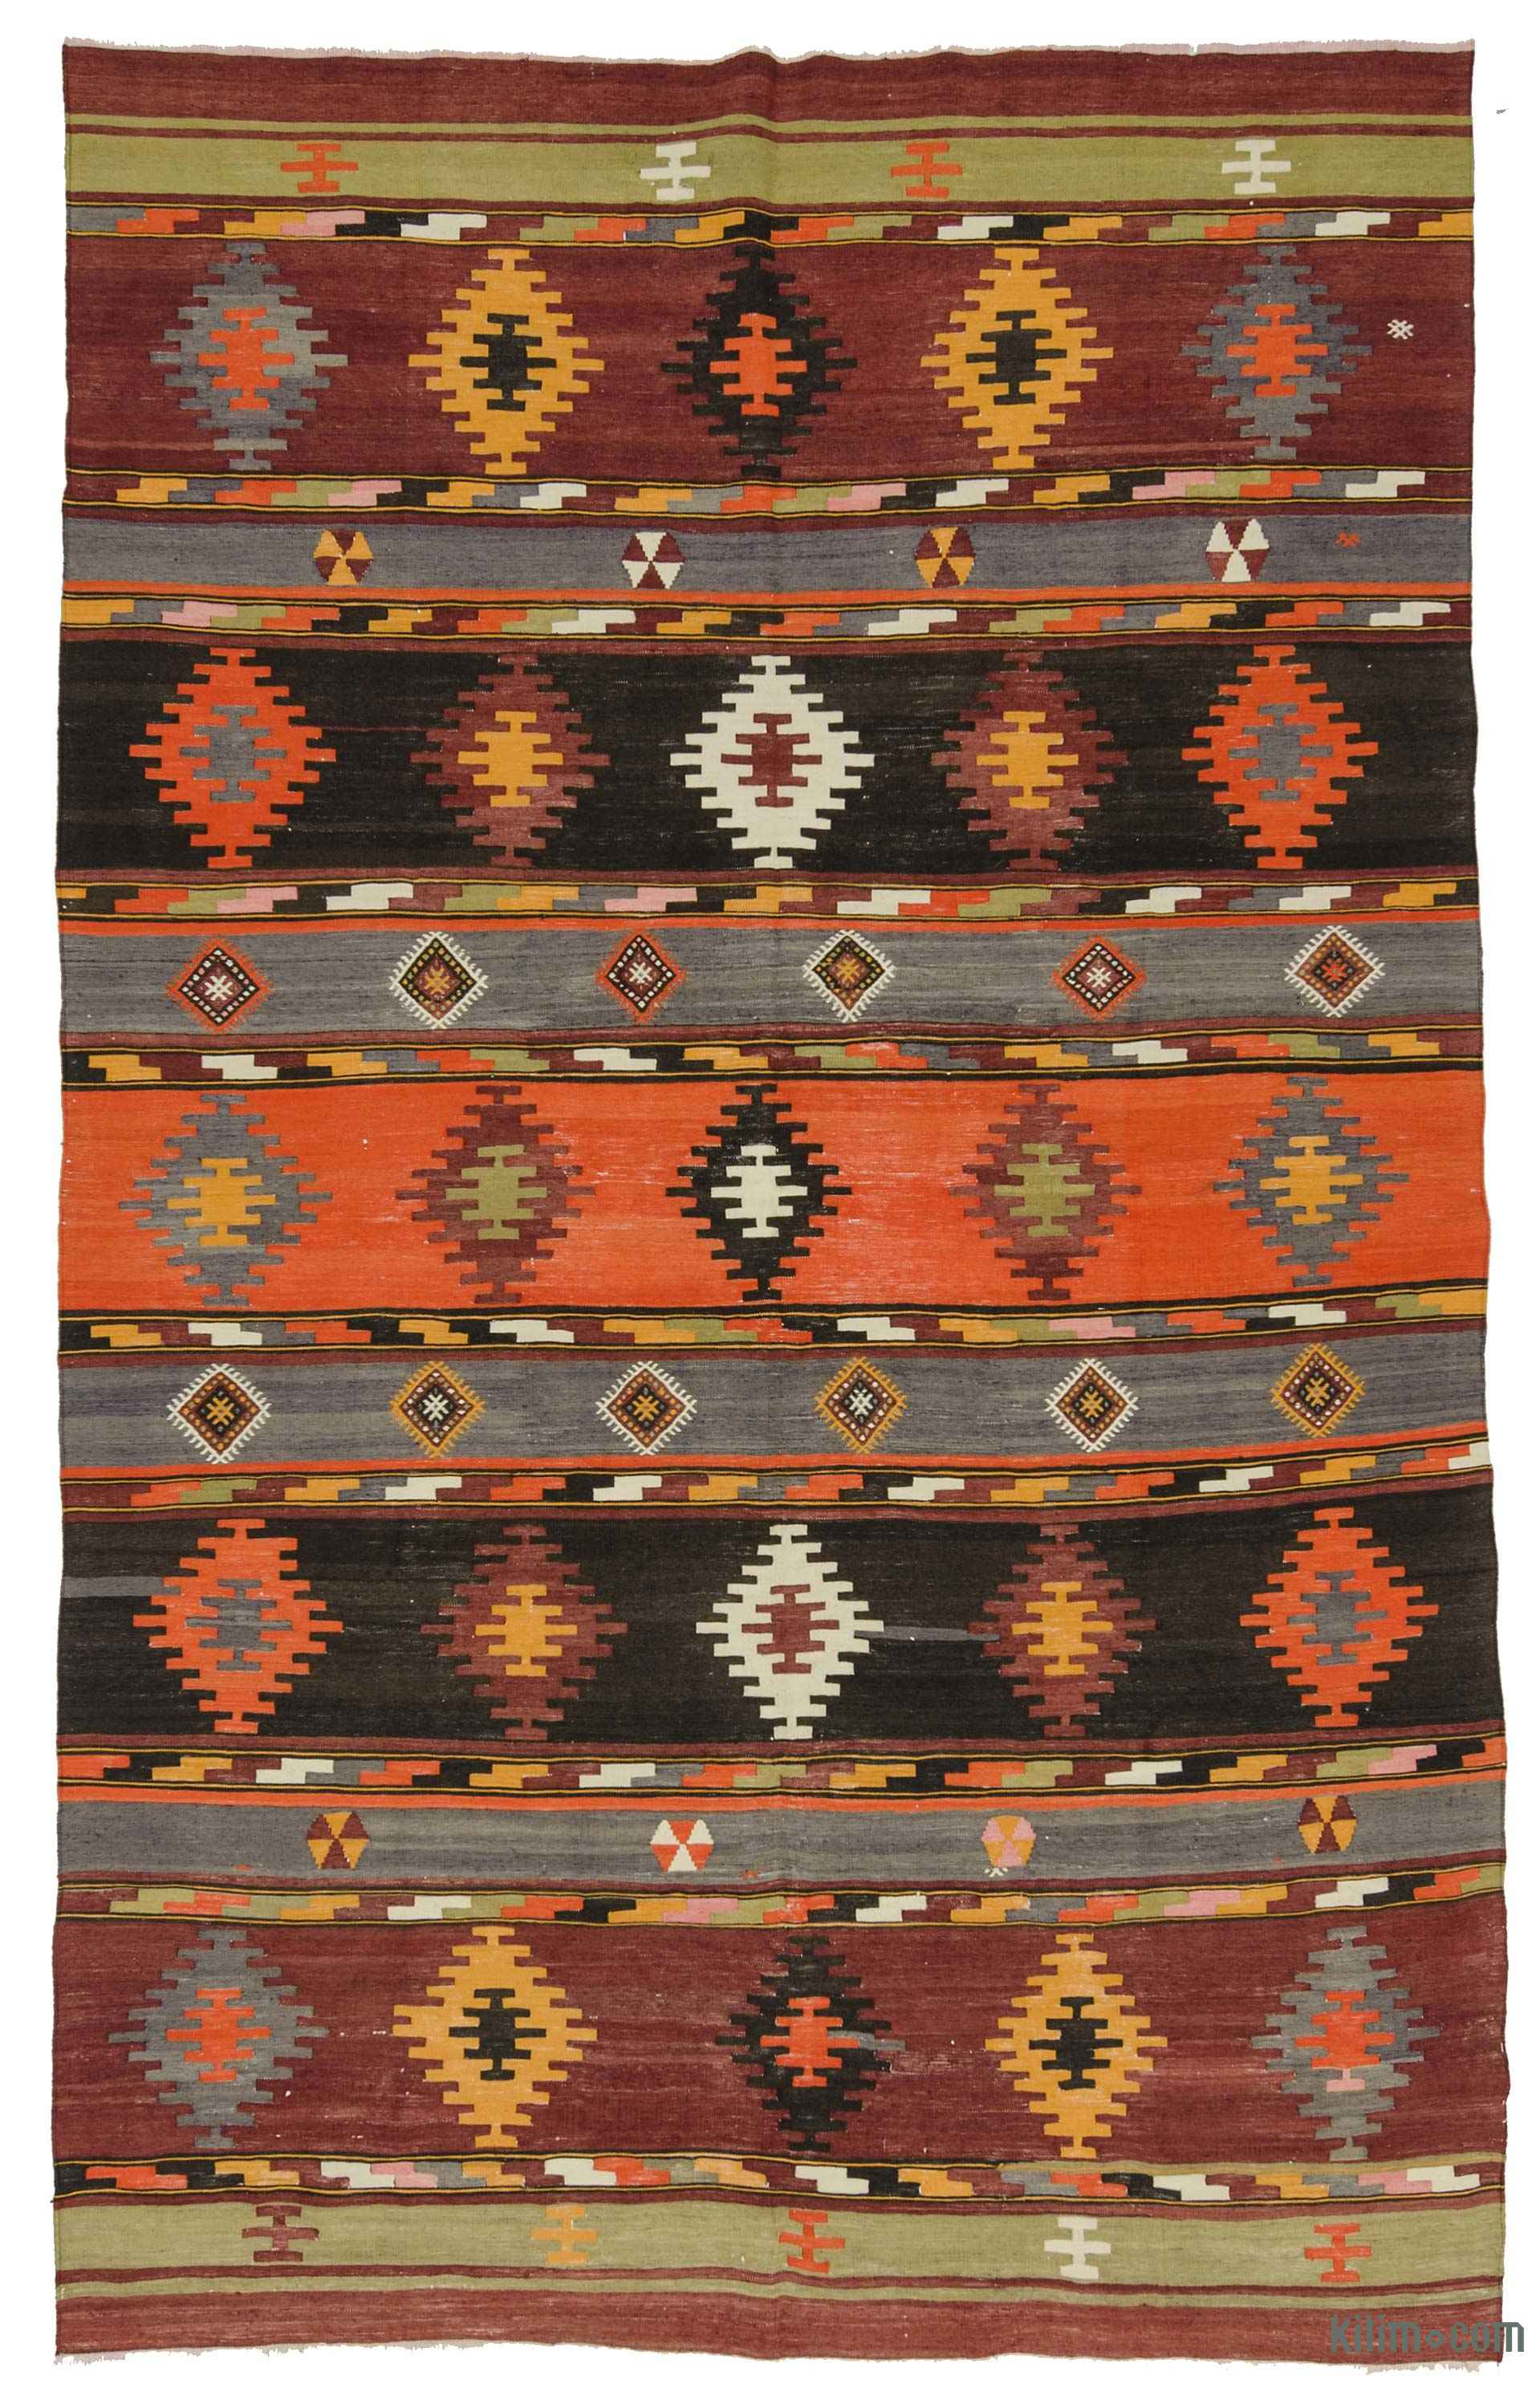 85b3710b6 K0027817 Multicolor Vintage Sivas Kilim Rug - 6'1'' x 9'6'' (73 in. x 114  in.)   Kilim.com: The Source for Authentic Vintage Rugs, Kilims, Overdyed  Oriental ...